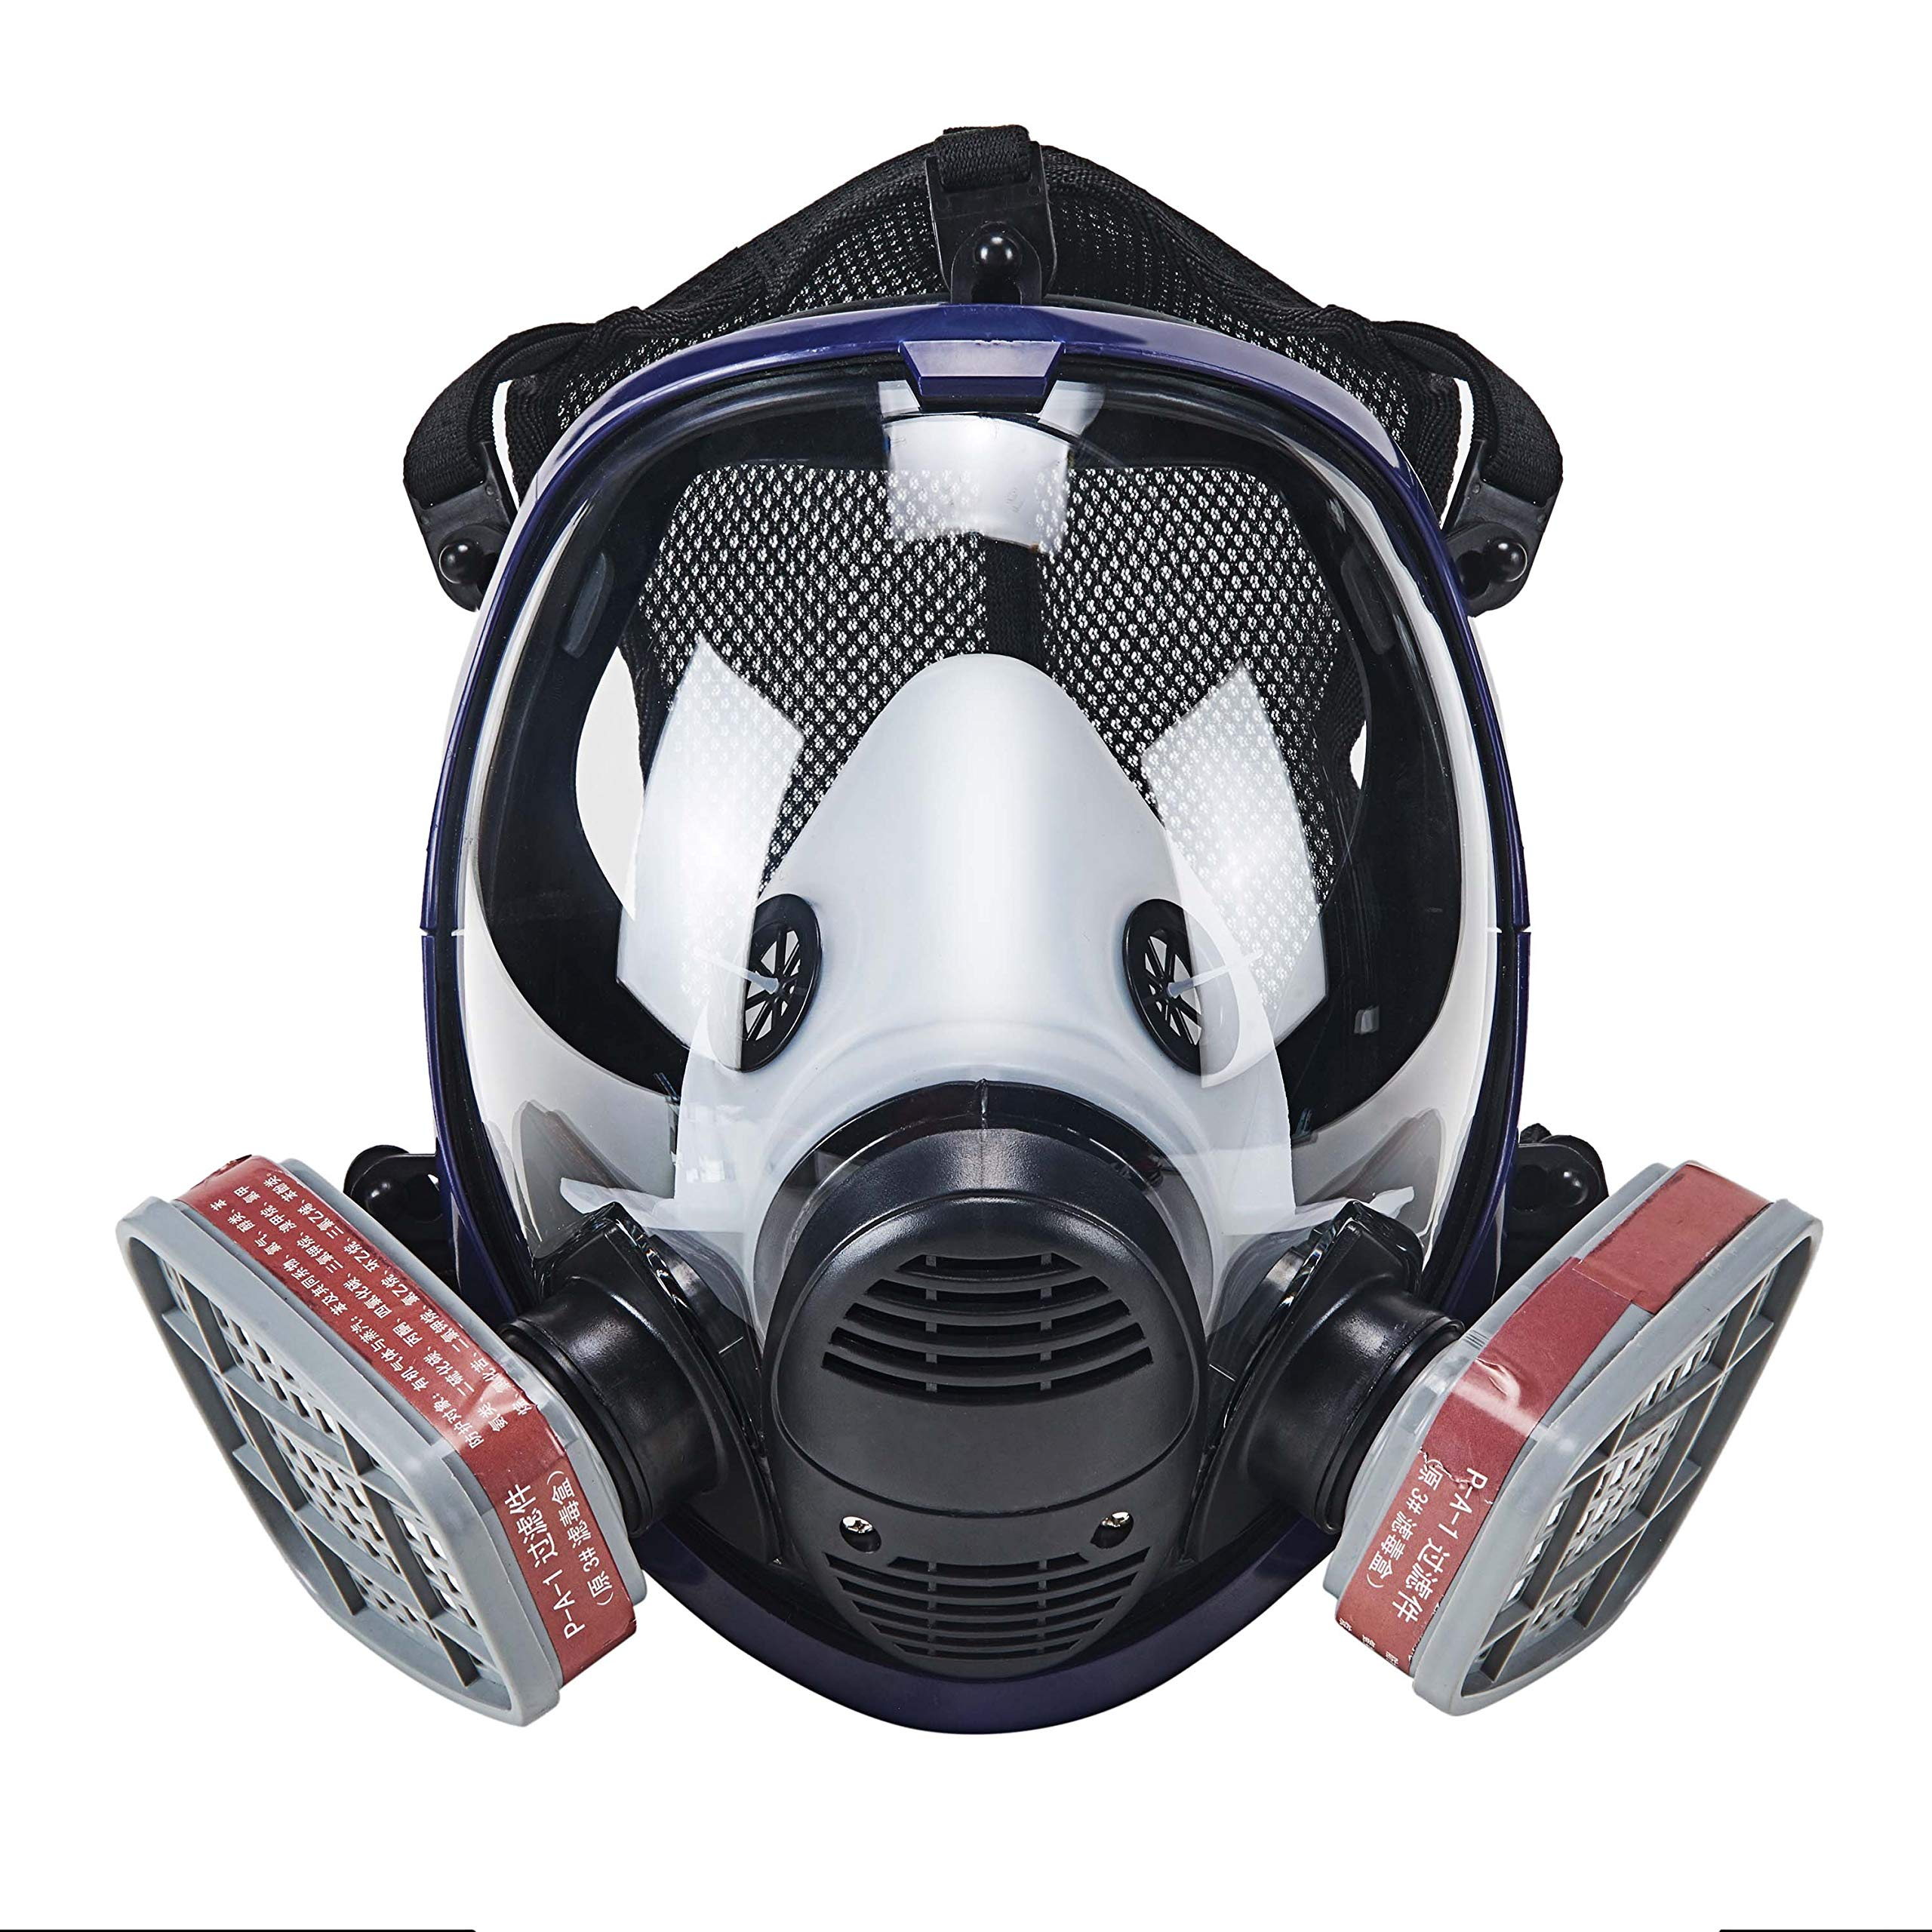 Holulo Full Face Respirator for Organic Vapor Industrial Grade Quality Respiratory Protection,Paint Spray Safety Mask (mask 33)